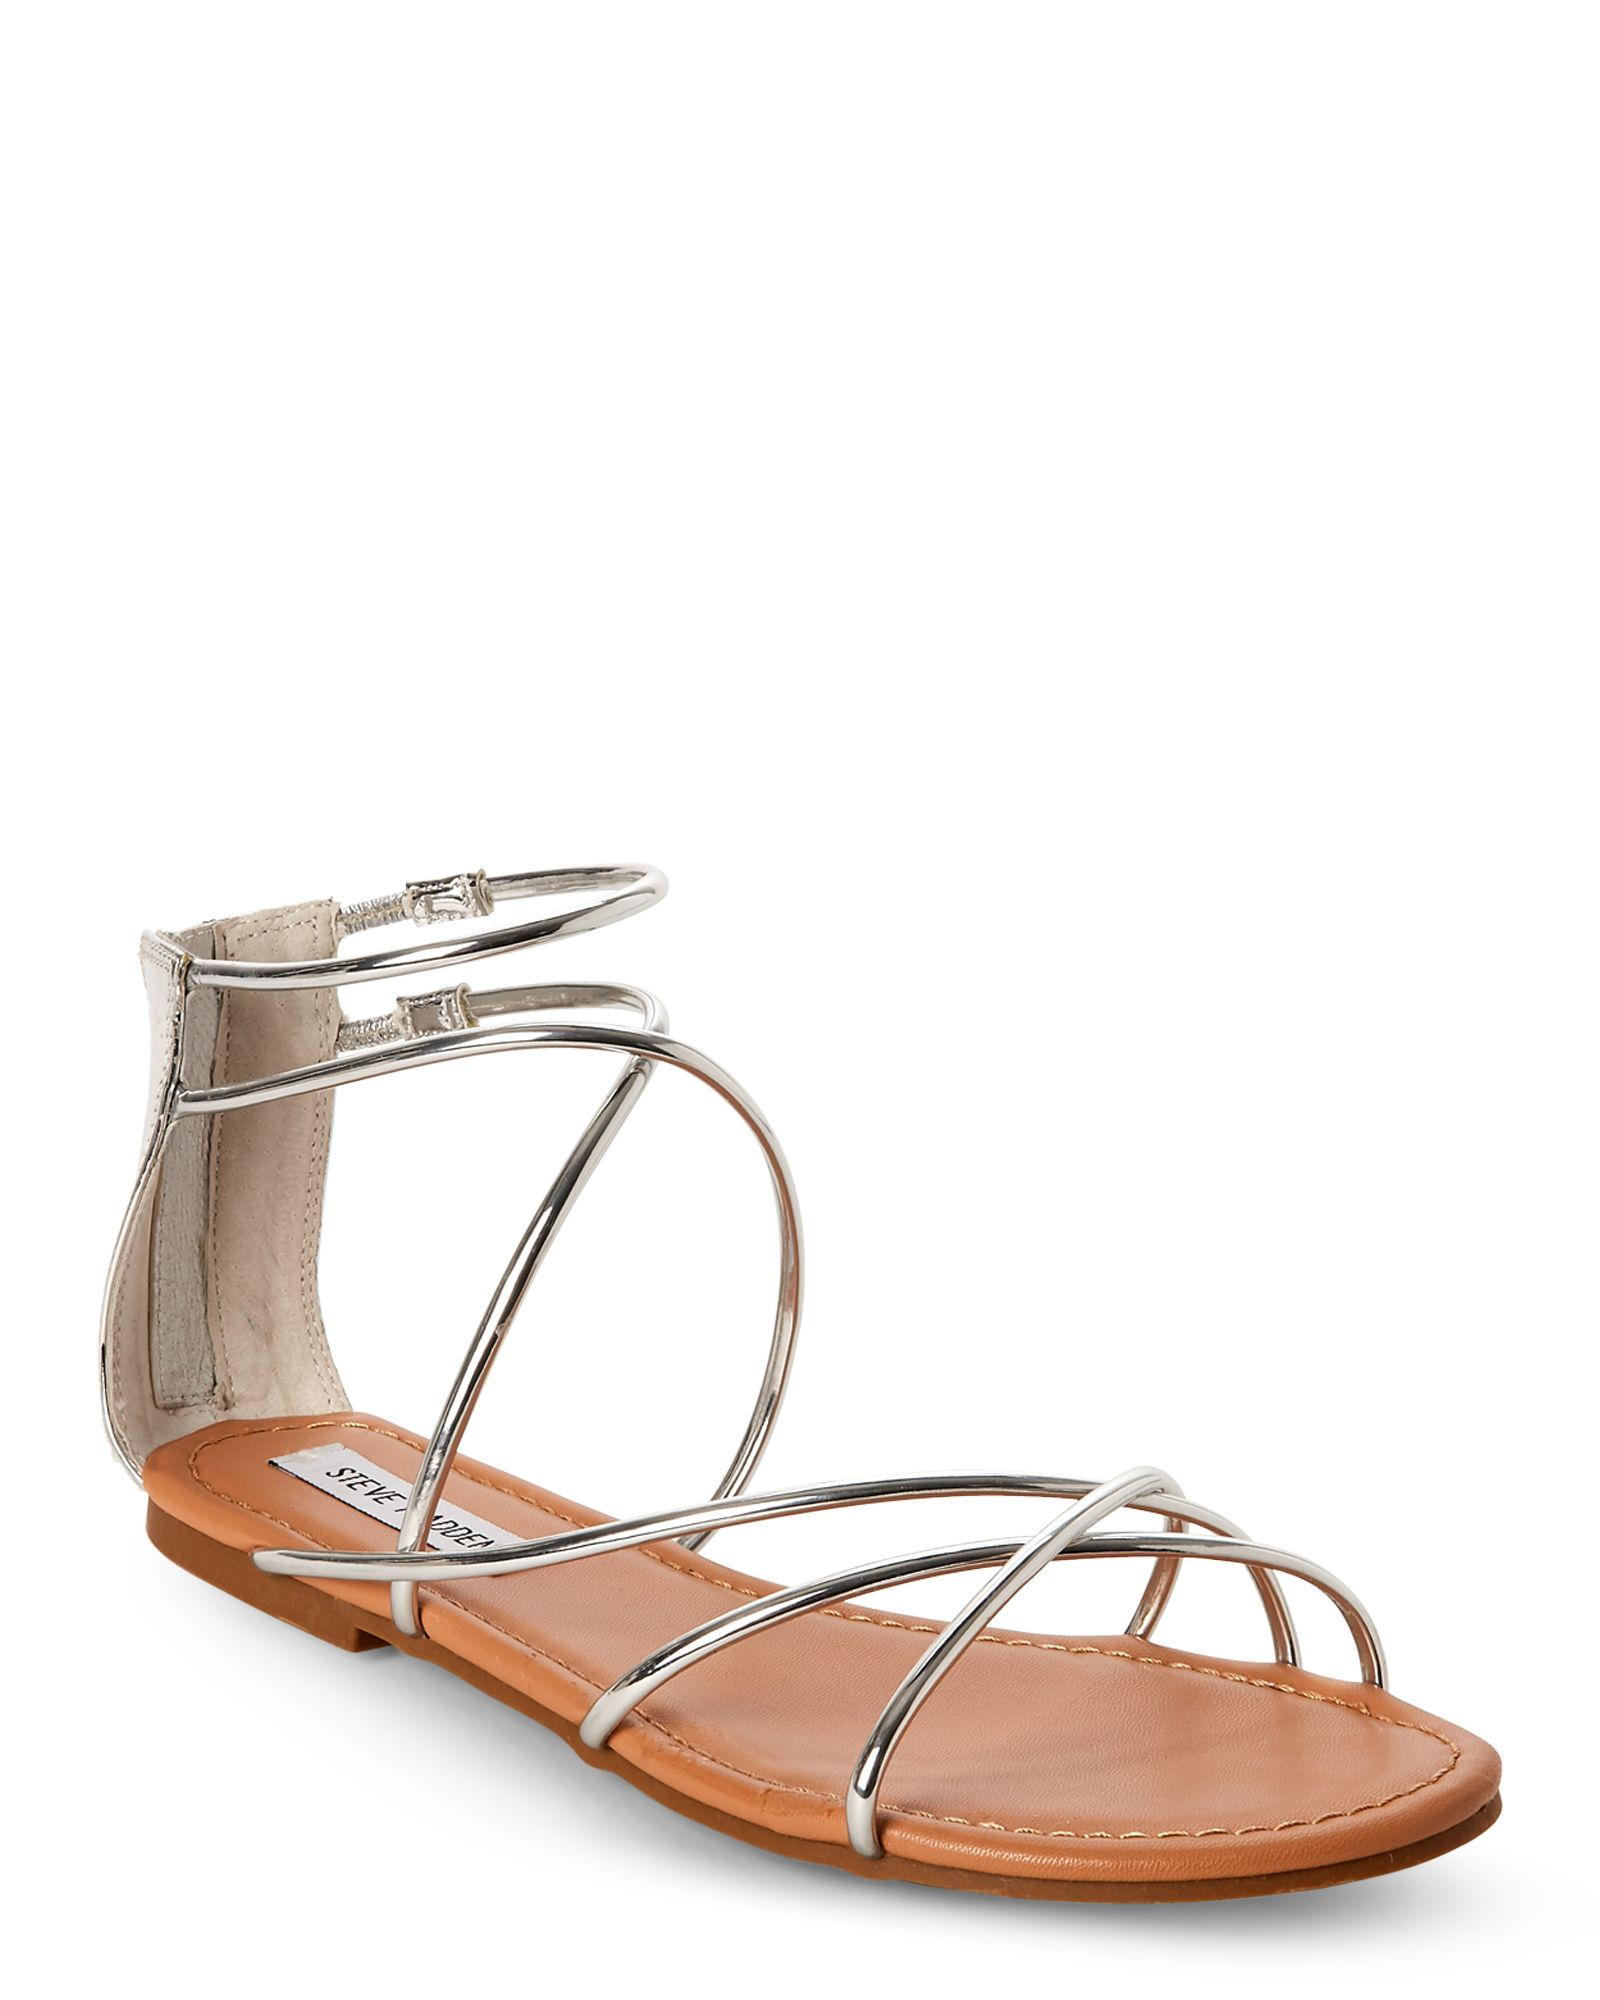 2d2088dab77 Silver Sapphire Strappy Flat Sandals in 2019 | *Apparel ...